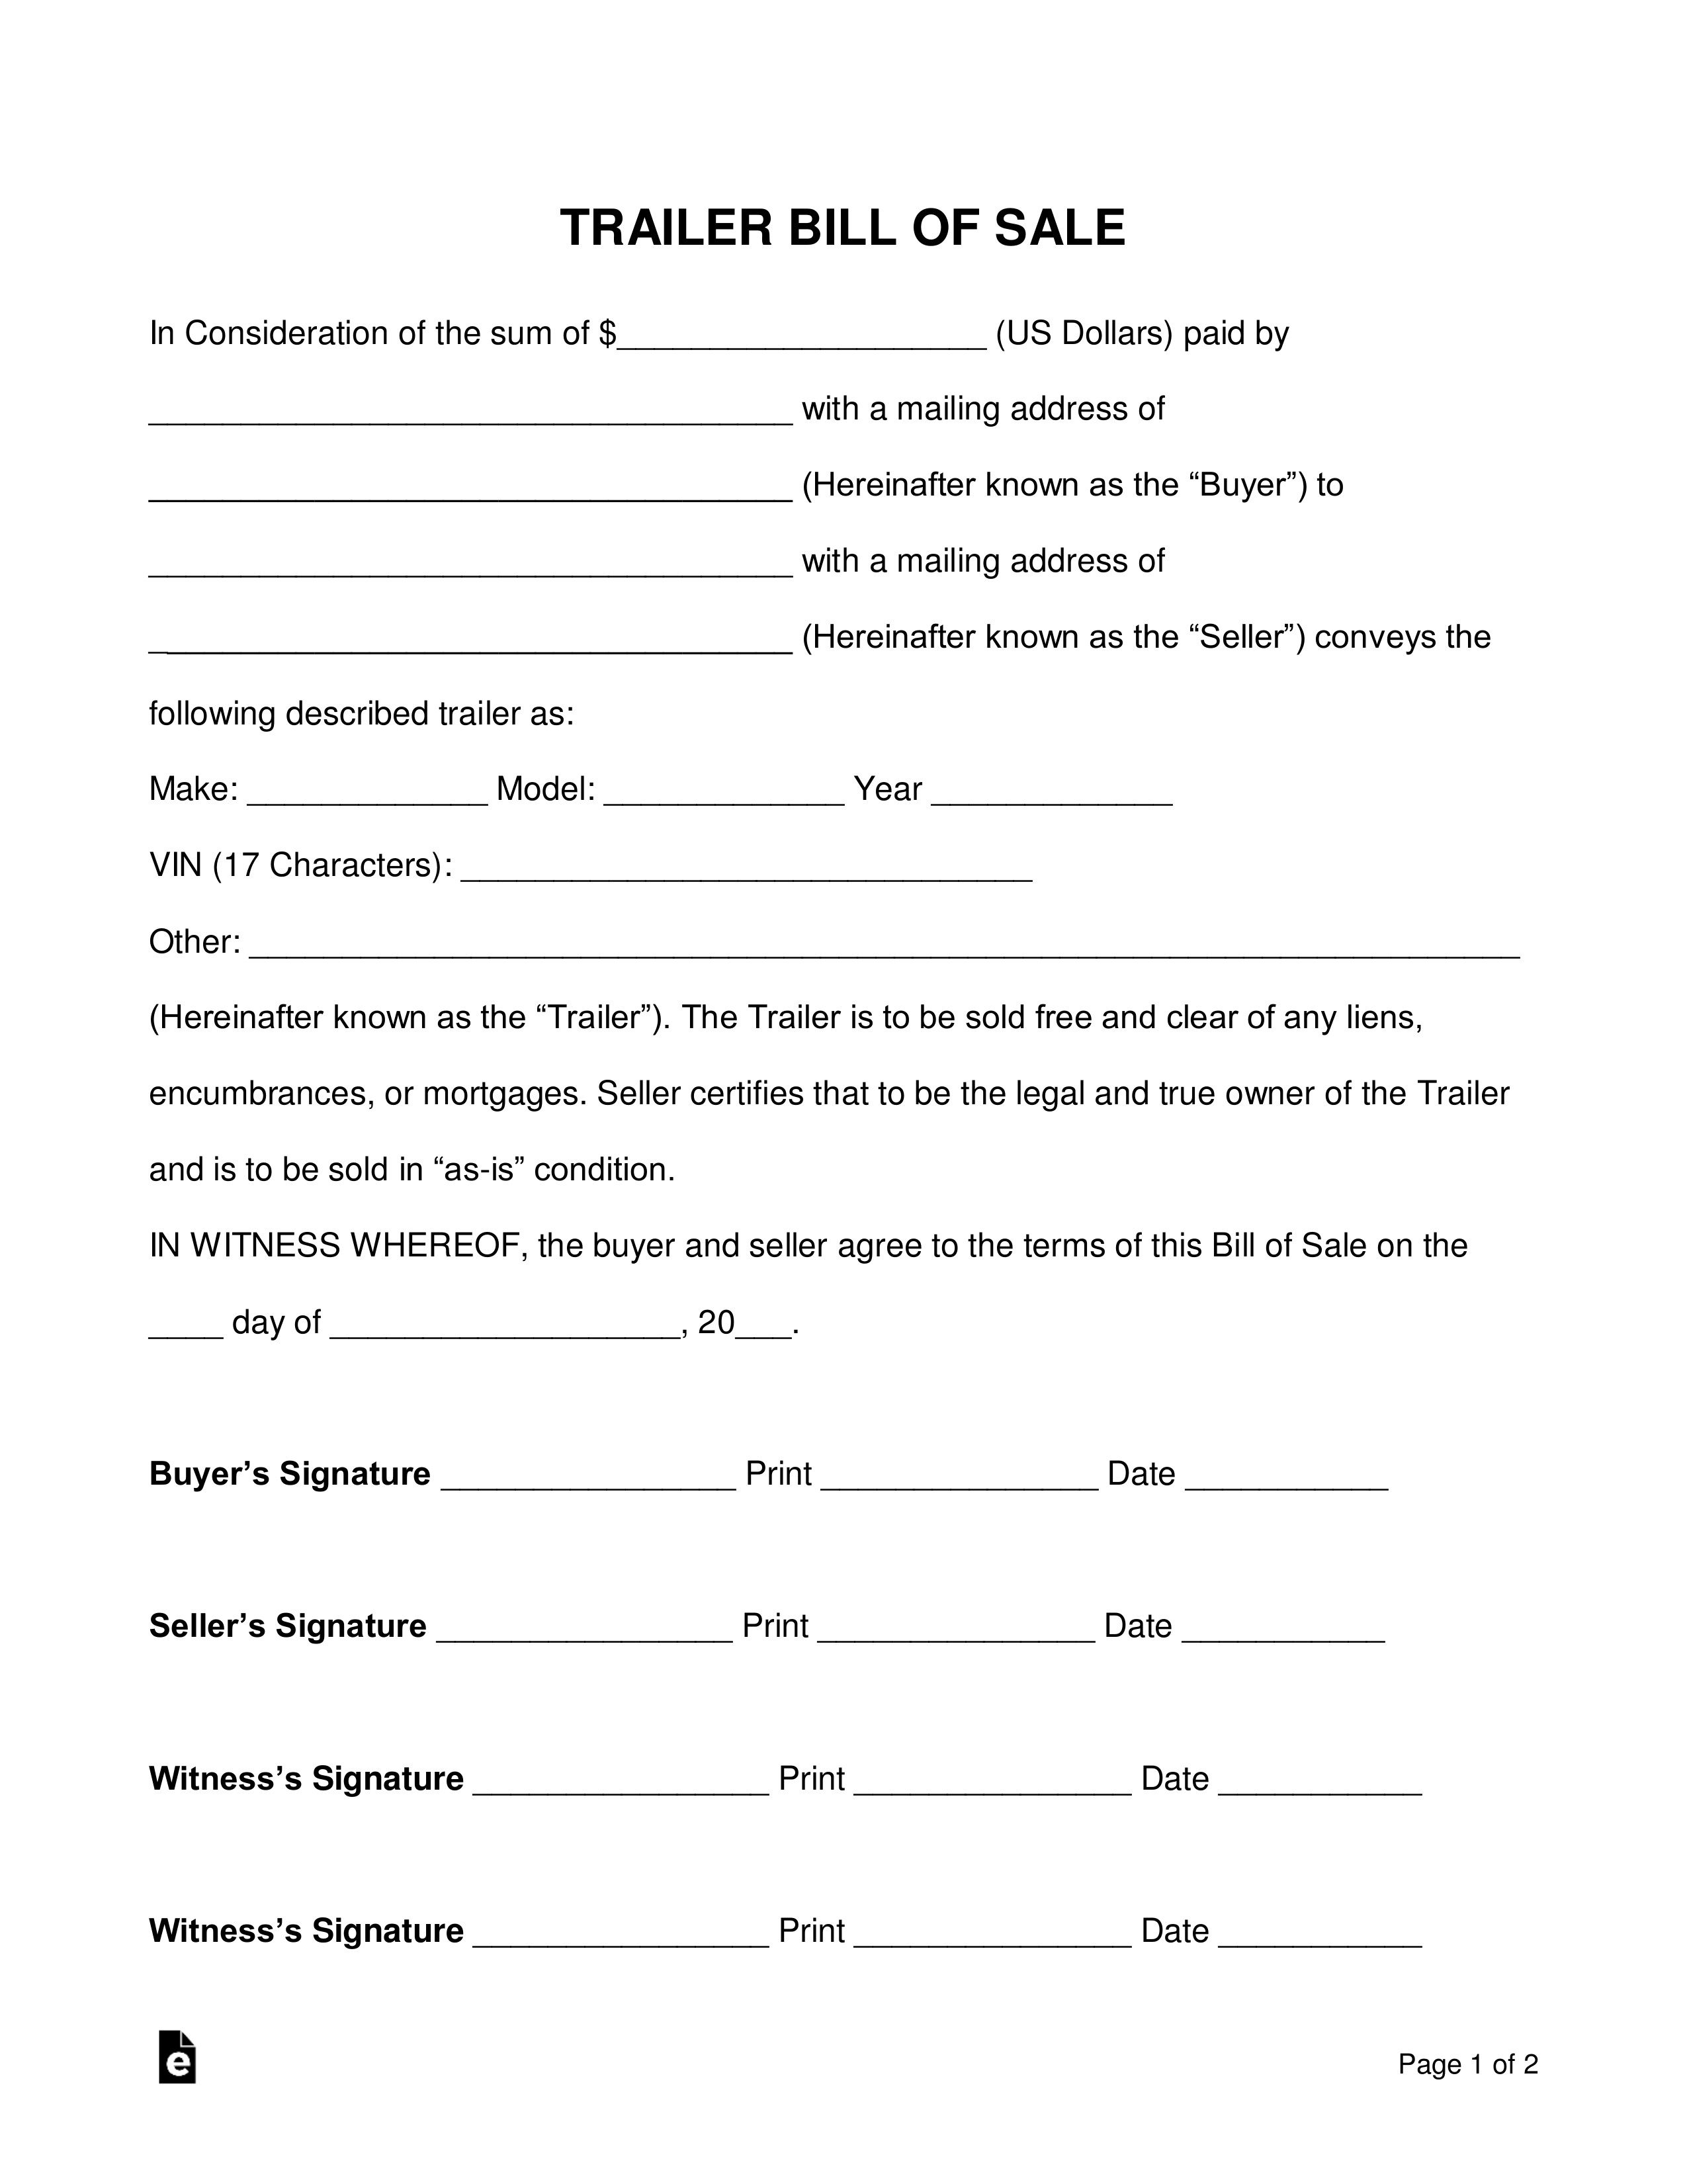 007 Rare Bill Of Sale Texa Template High Def  Motor Vehicle Form Free PrintableFull